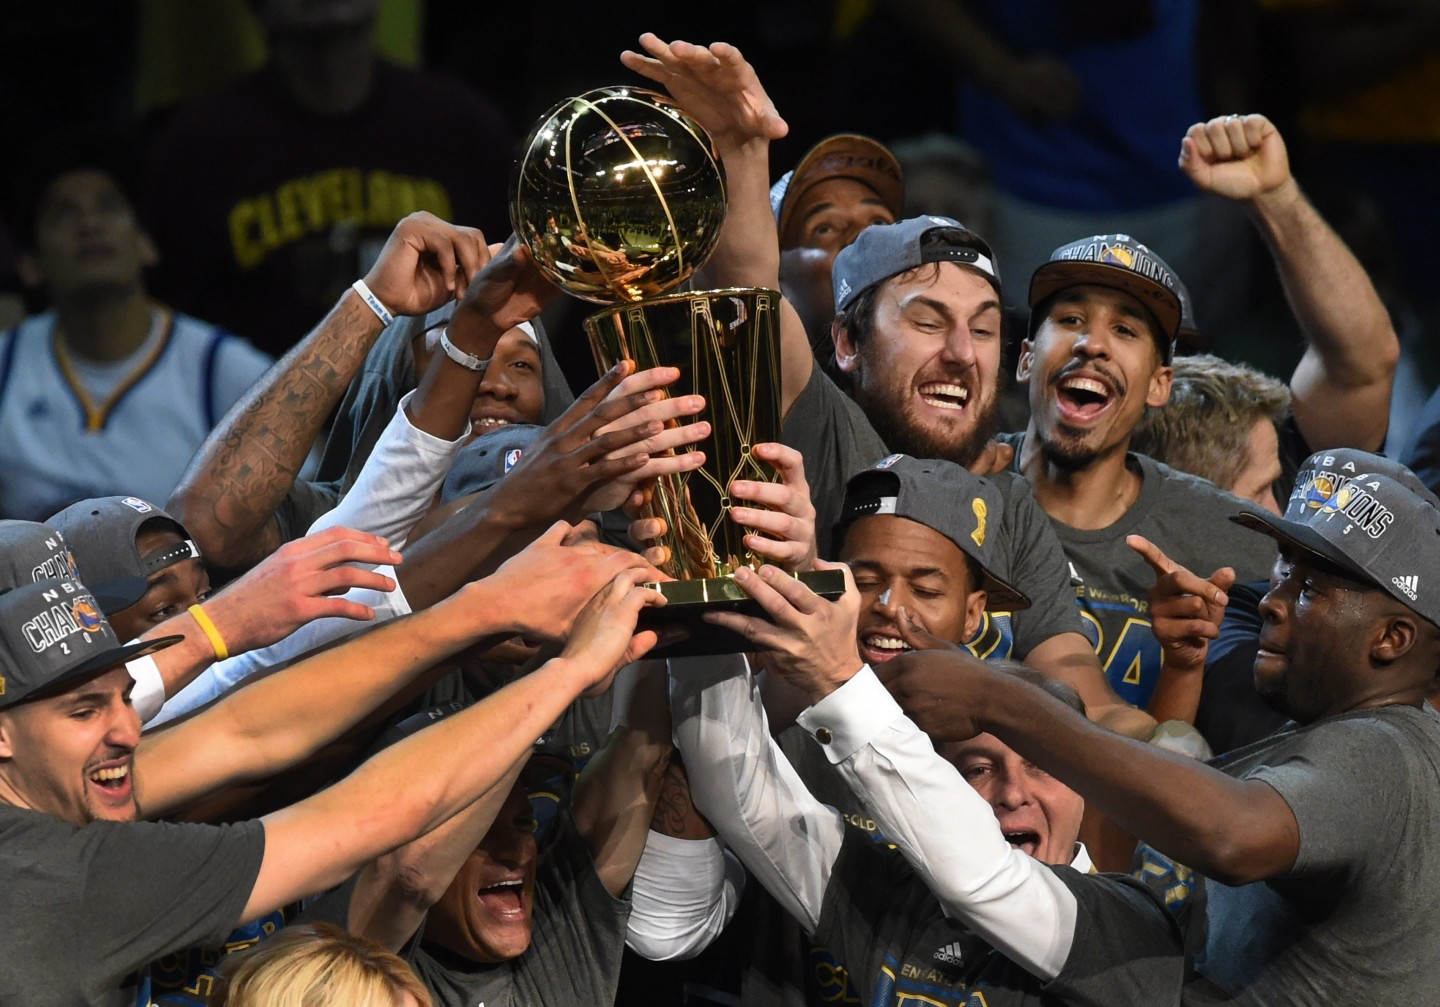 The Golden State Warriors celebrate winning the 2015 NBA Finals on June 16, 2015 at the Quicken Loans Arena in Cleveland, Ohio.   (Timothy A. Clary/AFP/Getty)